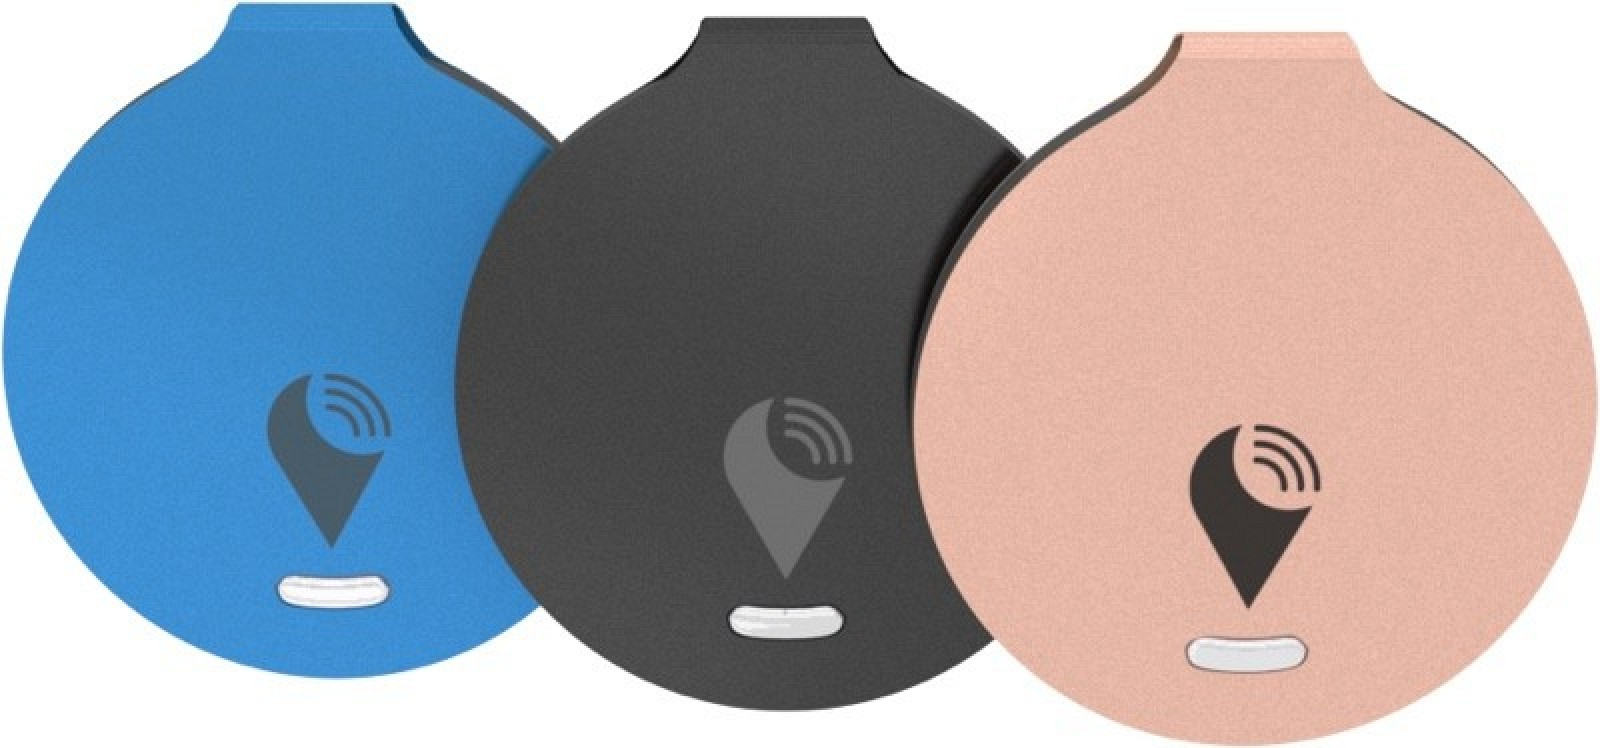 Gps Car Tracker >> TrackR Bravo Review: Hands-On With a Coin-Sized Bluetooth Tracker for Lost Items - Mac Rumors